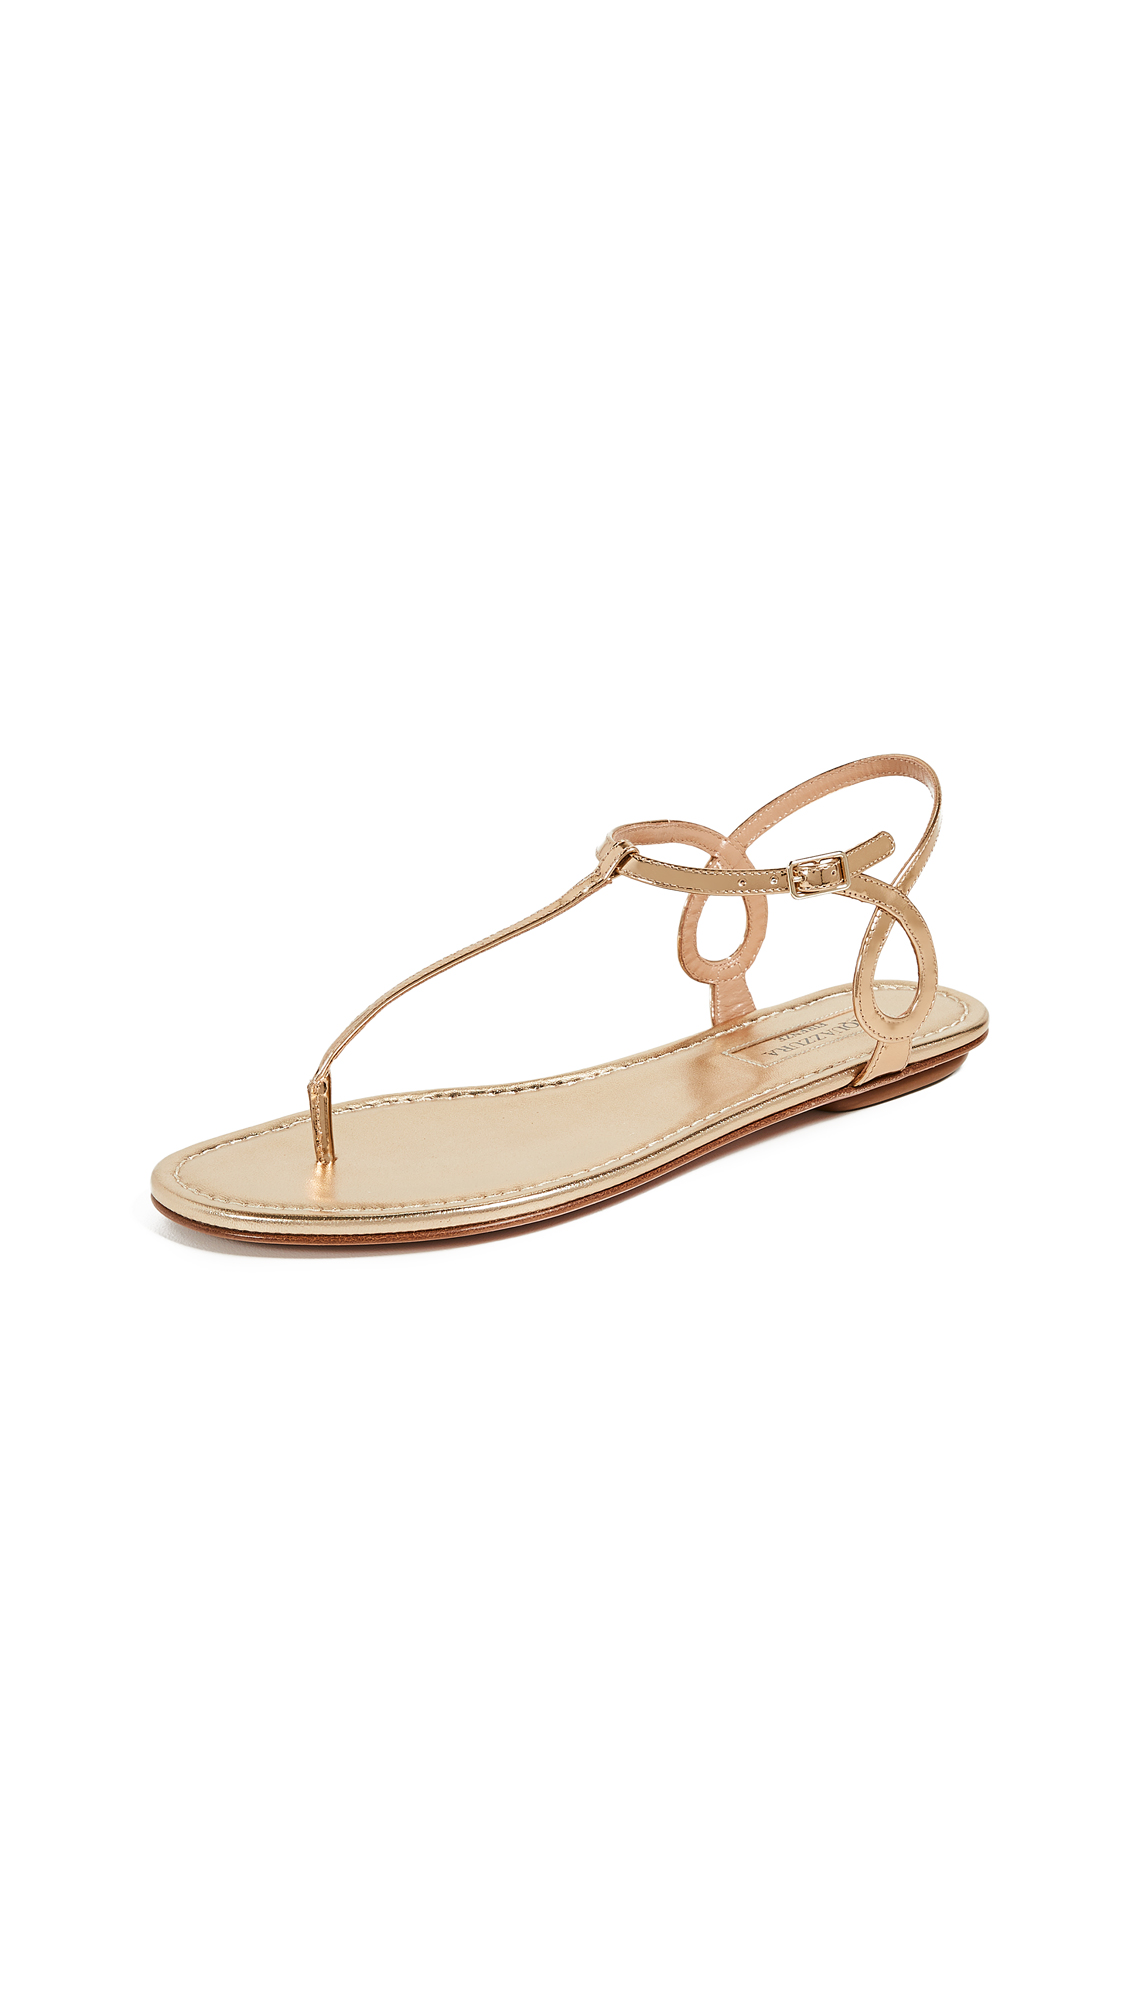 Buy Aquazzura Almost Bare Flat Sandals online, shop Aquazzura